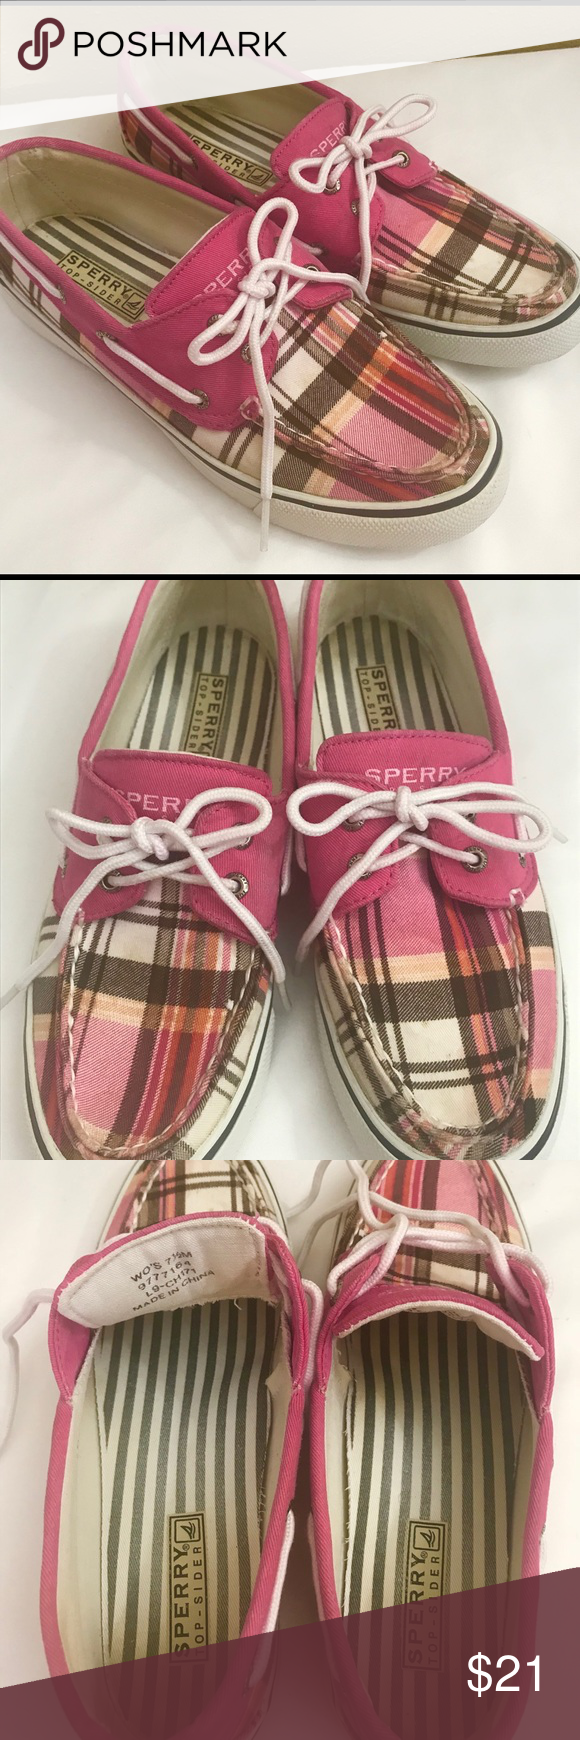 Sperry Top Sider Pink Plaid Boat Shoes